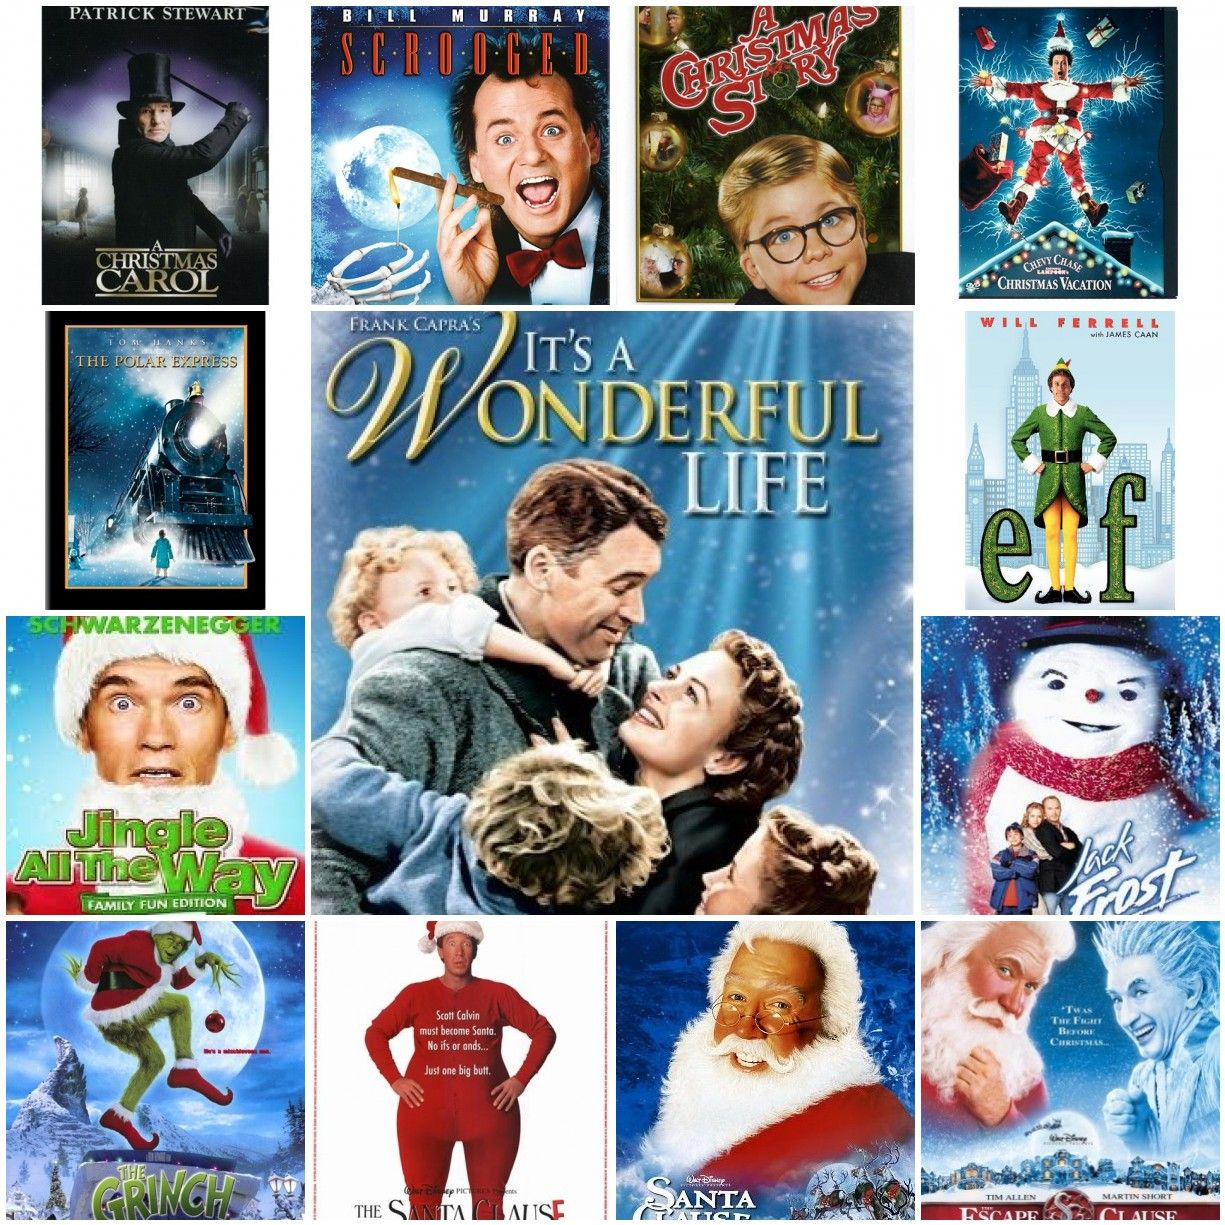 Here are the answers to the Christmas Movie Quiz